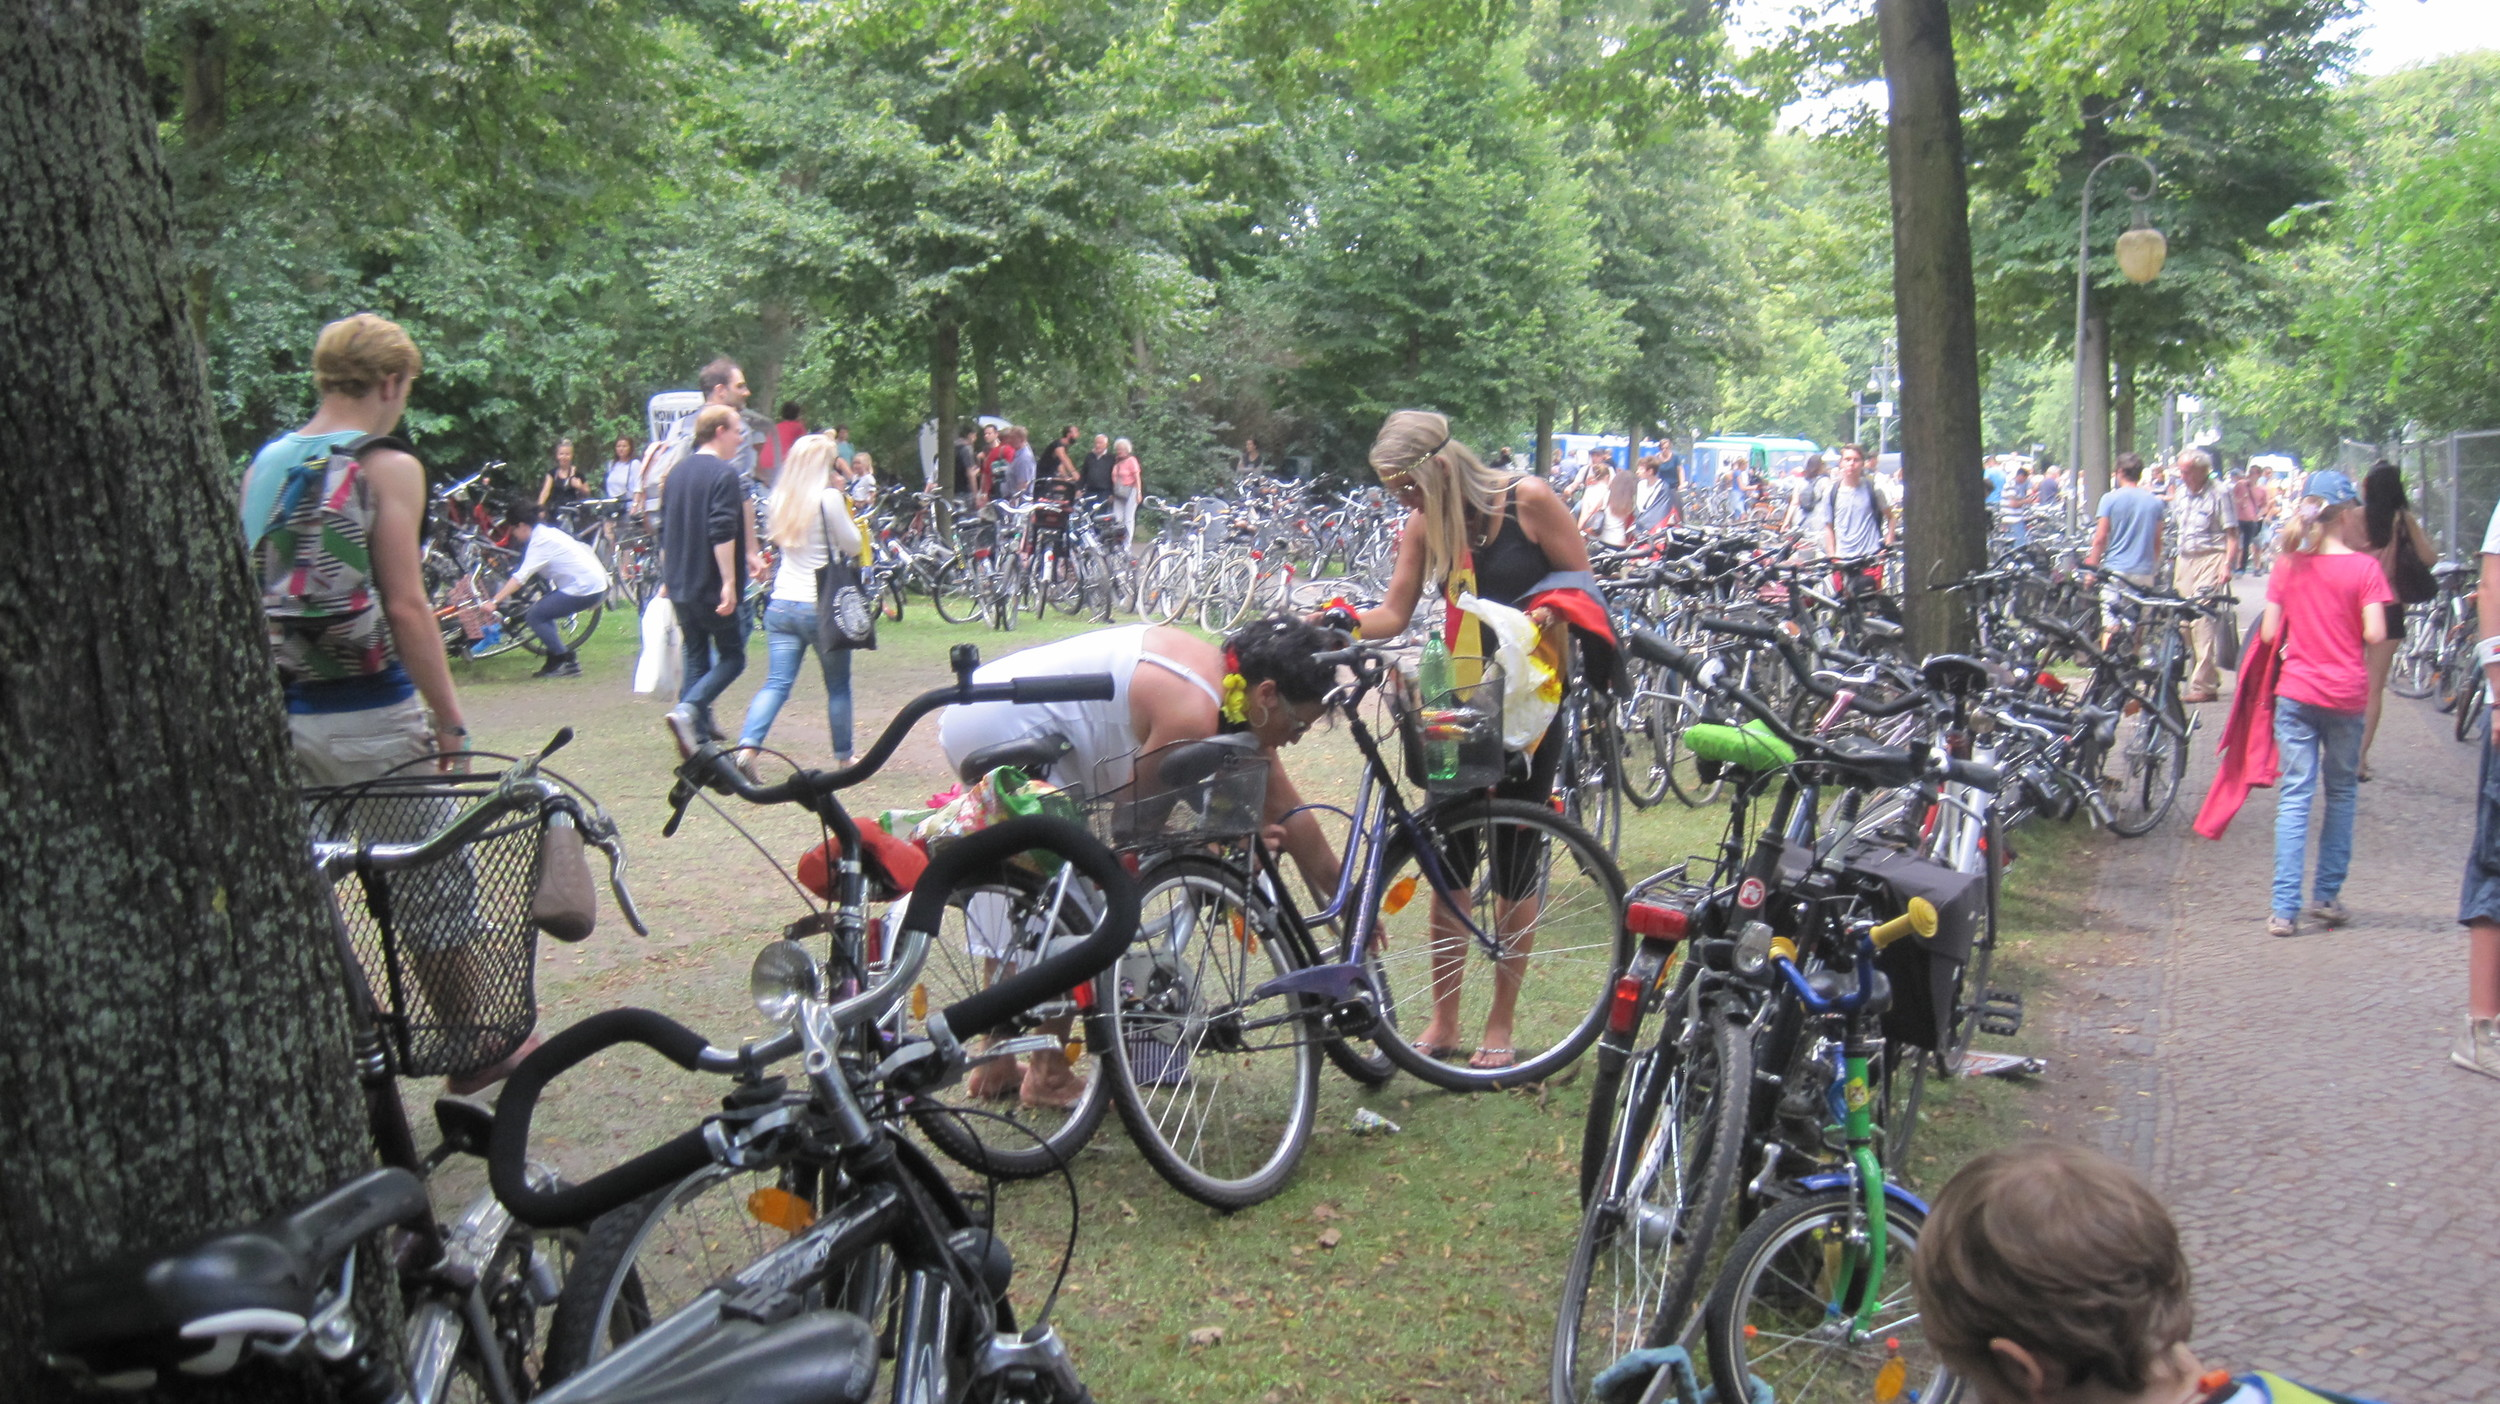 Germany soccer fanscame by foot, bike and transit to join in the massive World Cup celebration at Bradenburg Tor. It was an amazing time to be in Berlinto see soccer mania and the prevalent use of bikes across the city. (Photo: M. Zimmerman, July 2014)